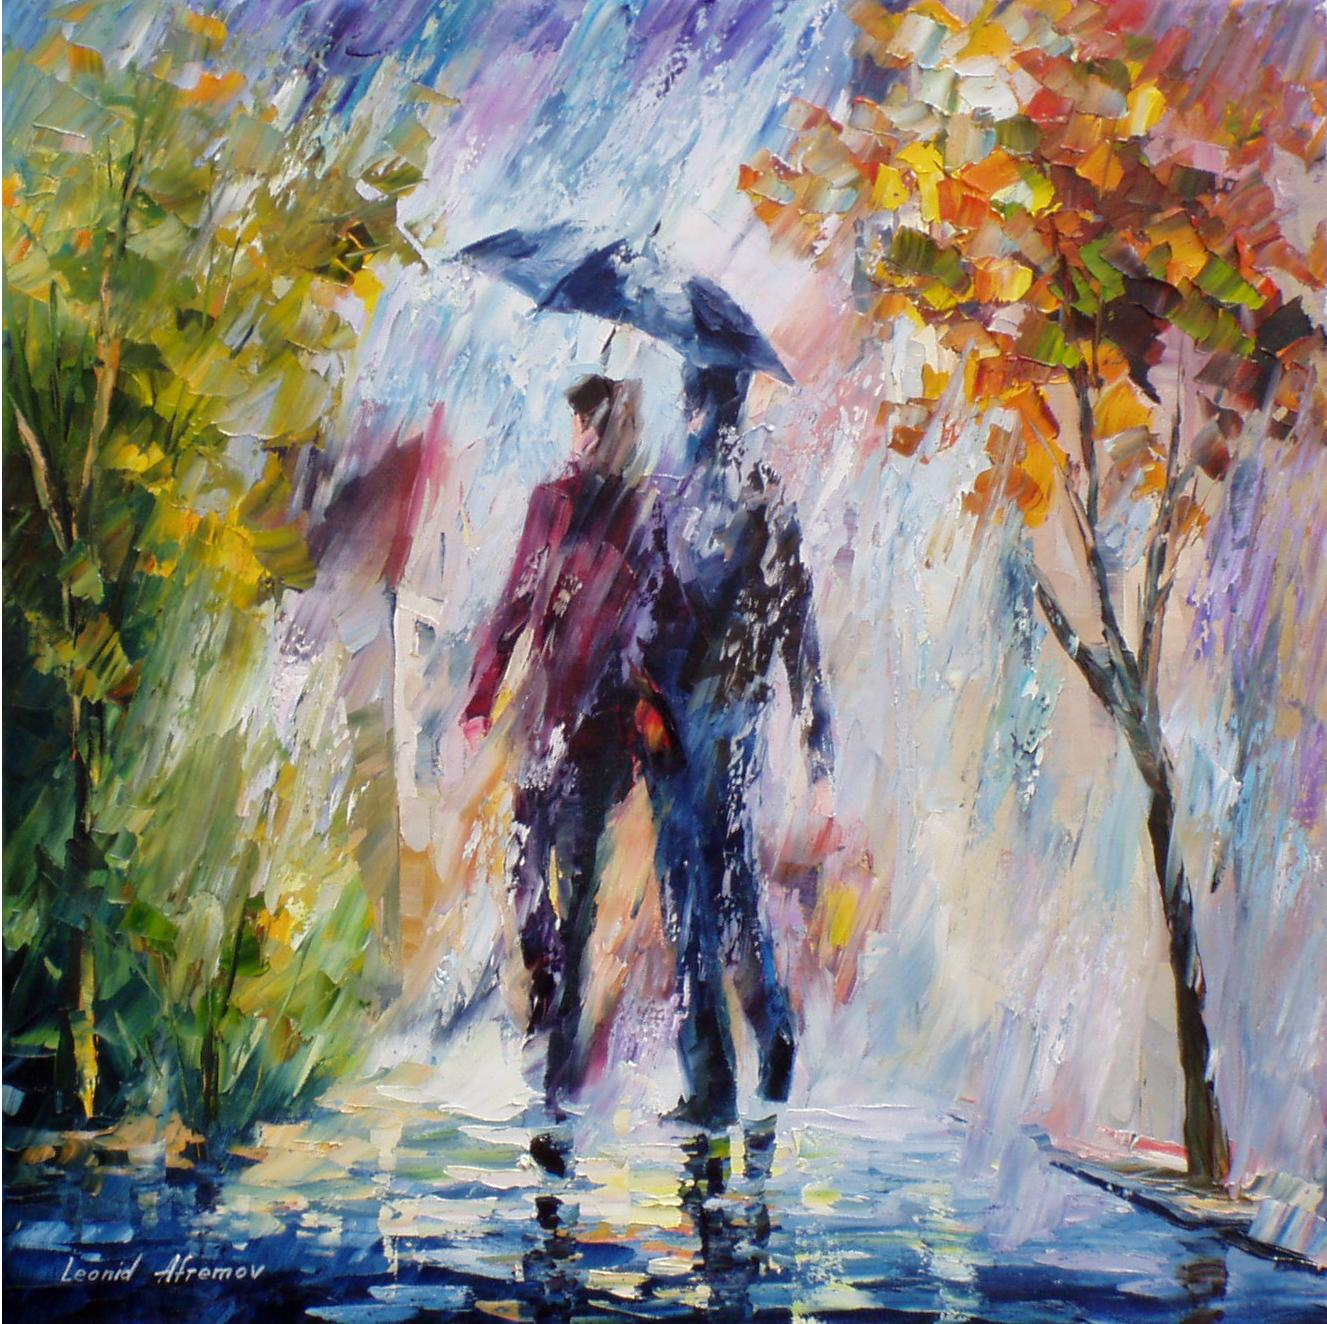 Rainy Weather Palette Knife Oil Painting On Canvas By Leonid Afremov Size 24 W X 24 H